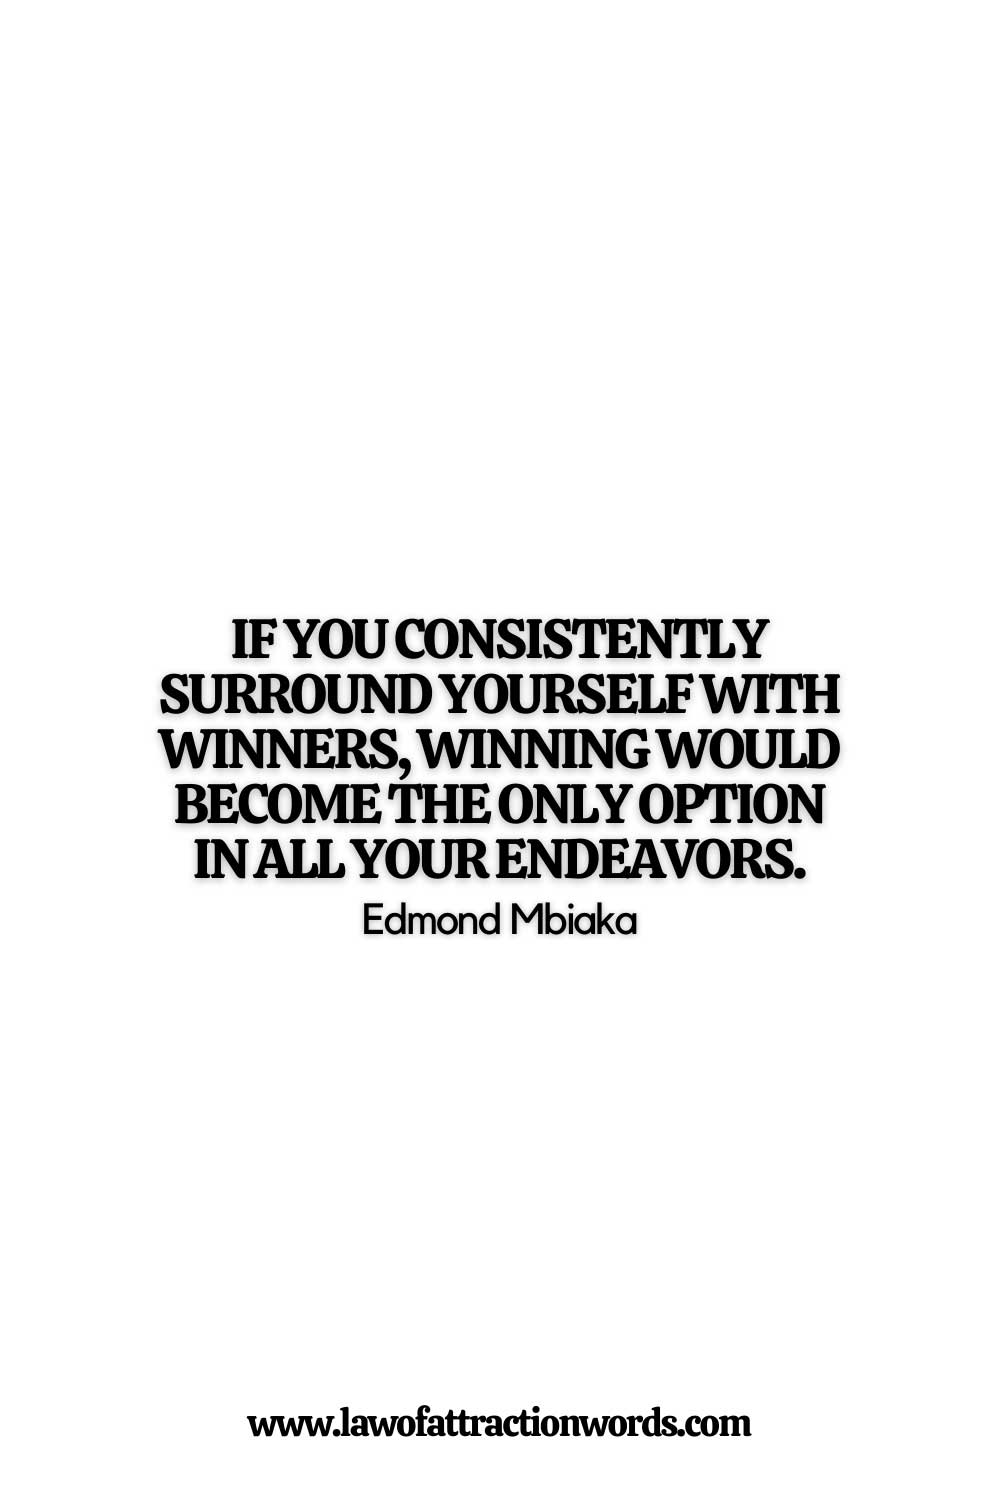 Surround Yourself With Winners Quotes To Boost Mindset